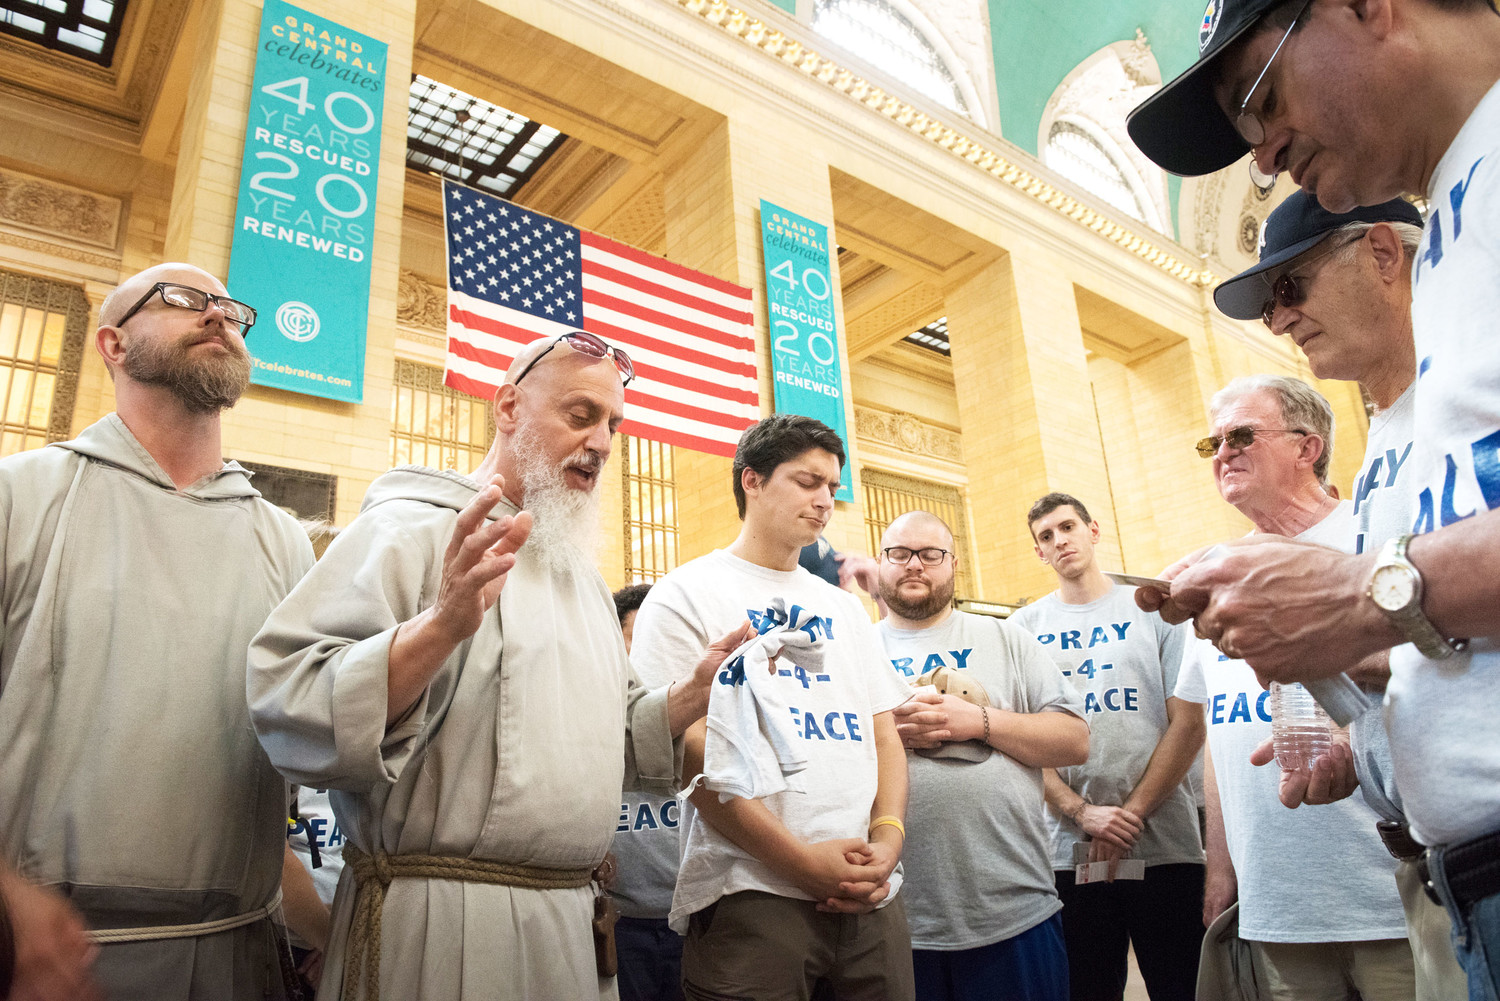 Father Louis Leonelli, C.F.R., second from left, leads a prayer gathering inside Grand Central Station in Manhattan. More than 50 people participated in a Pray for Peace walk to Yankee Stadium in the Bronx June 30, a very hot Saturday when the Yankees hosted the Boston Red Sox. The event organizer, Al Forte, 75, with sunglasses, is third from right.